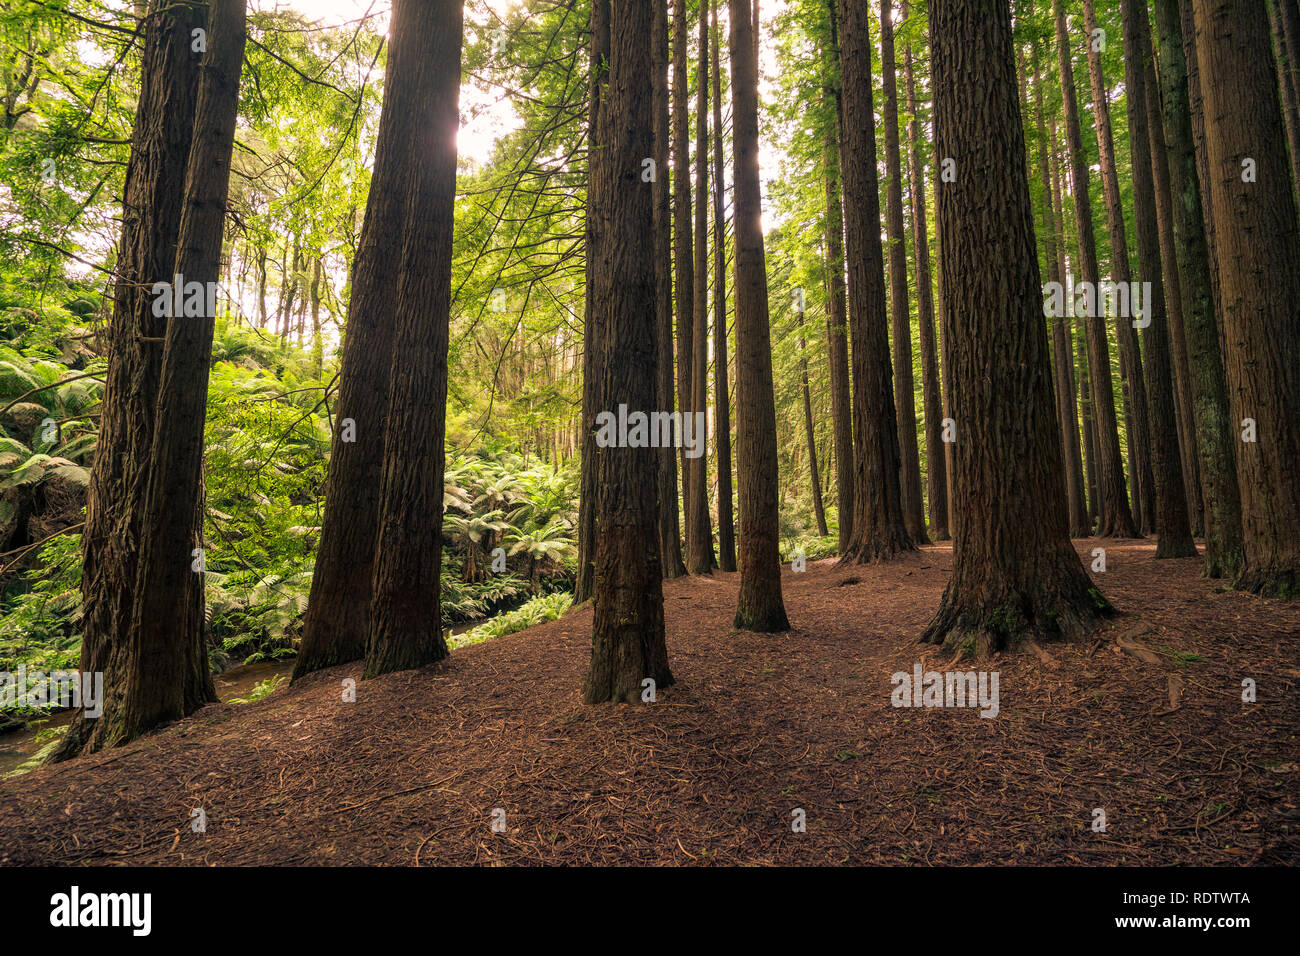 A Californian Redwood Forest, Great Otway National Park, Victoria, Australia - Stock Image